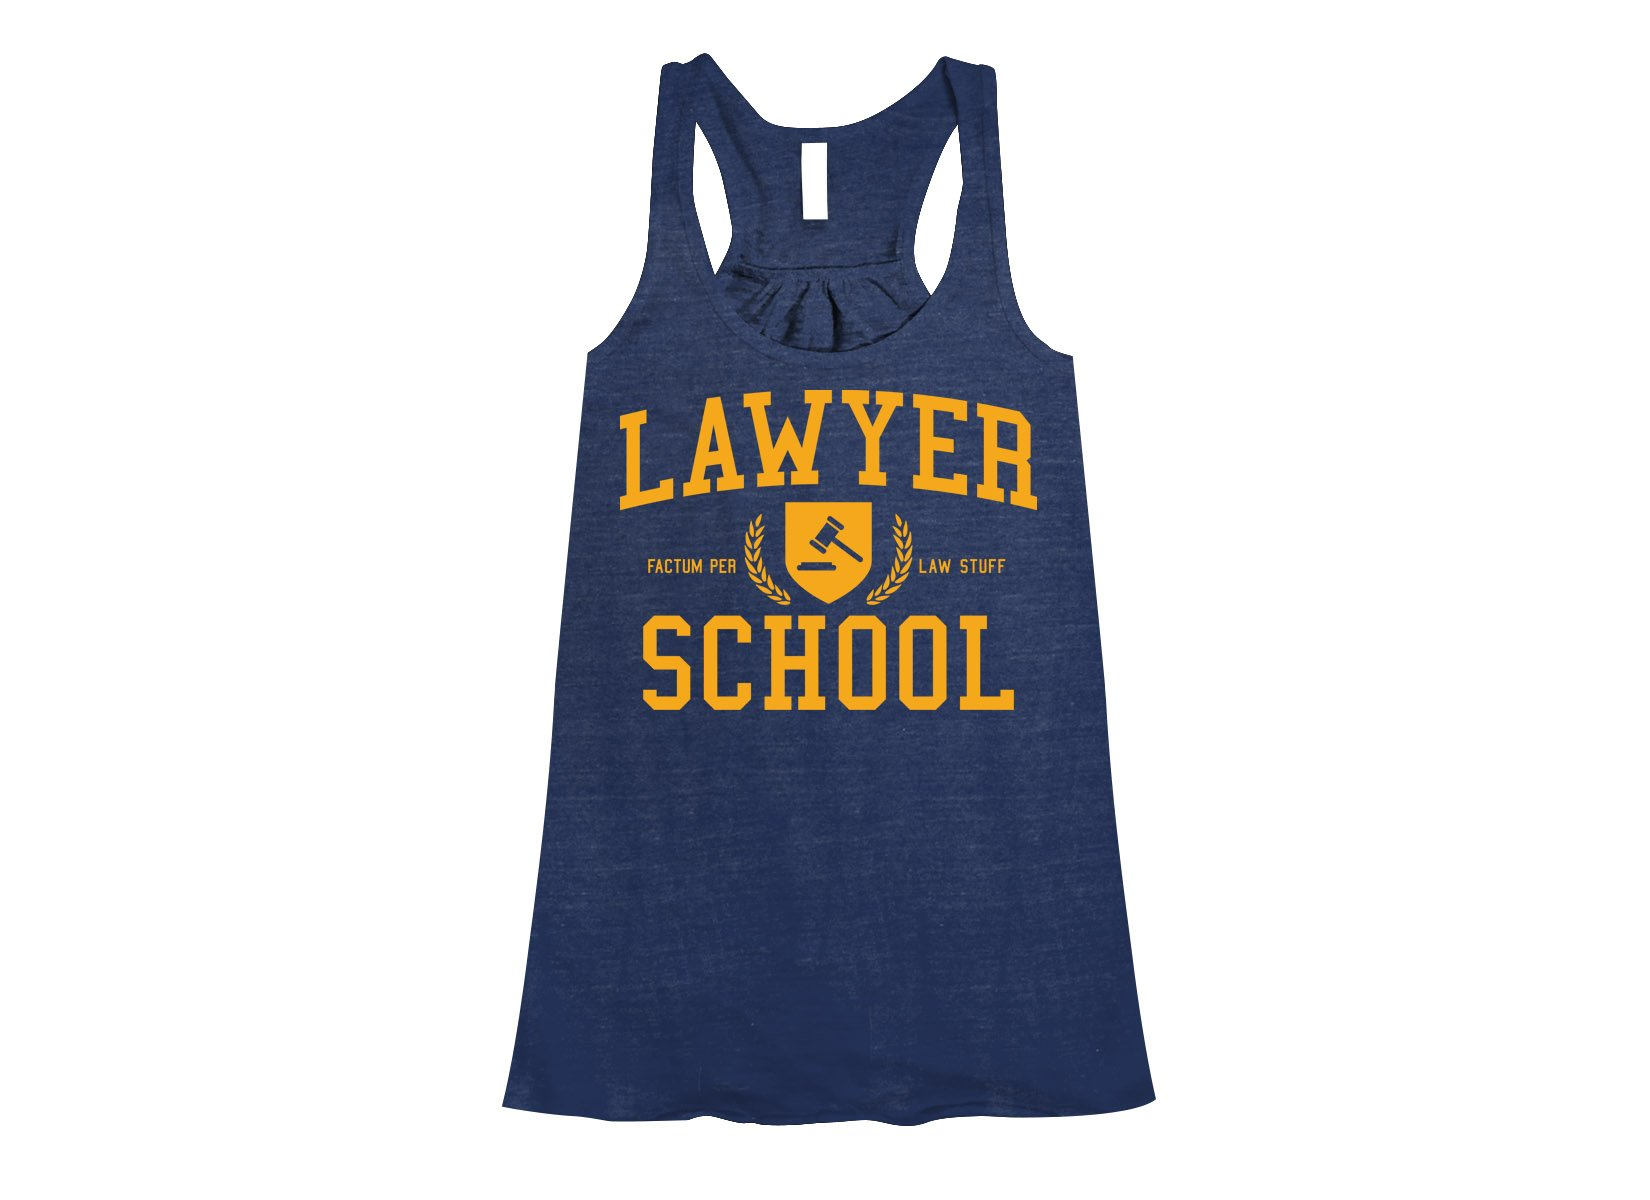 Lawyer School on Womens Tanks T-Shirt